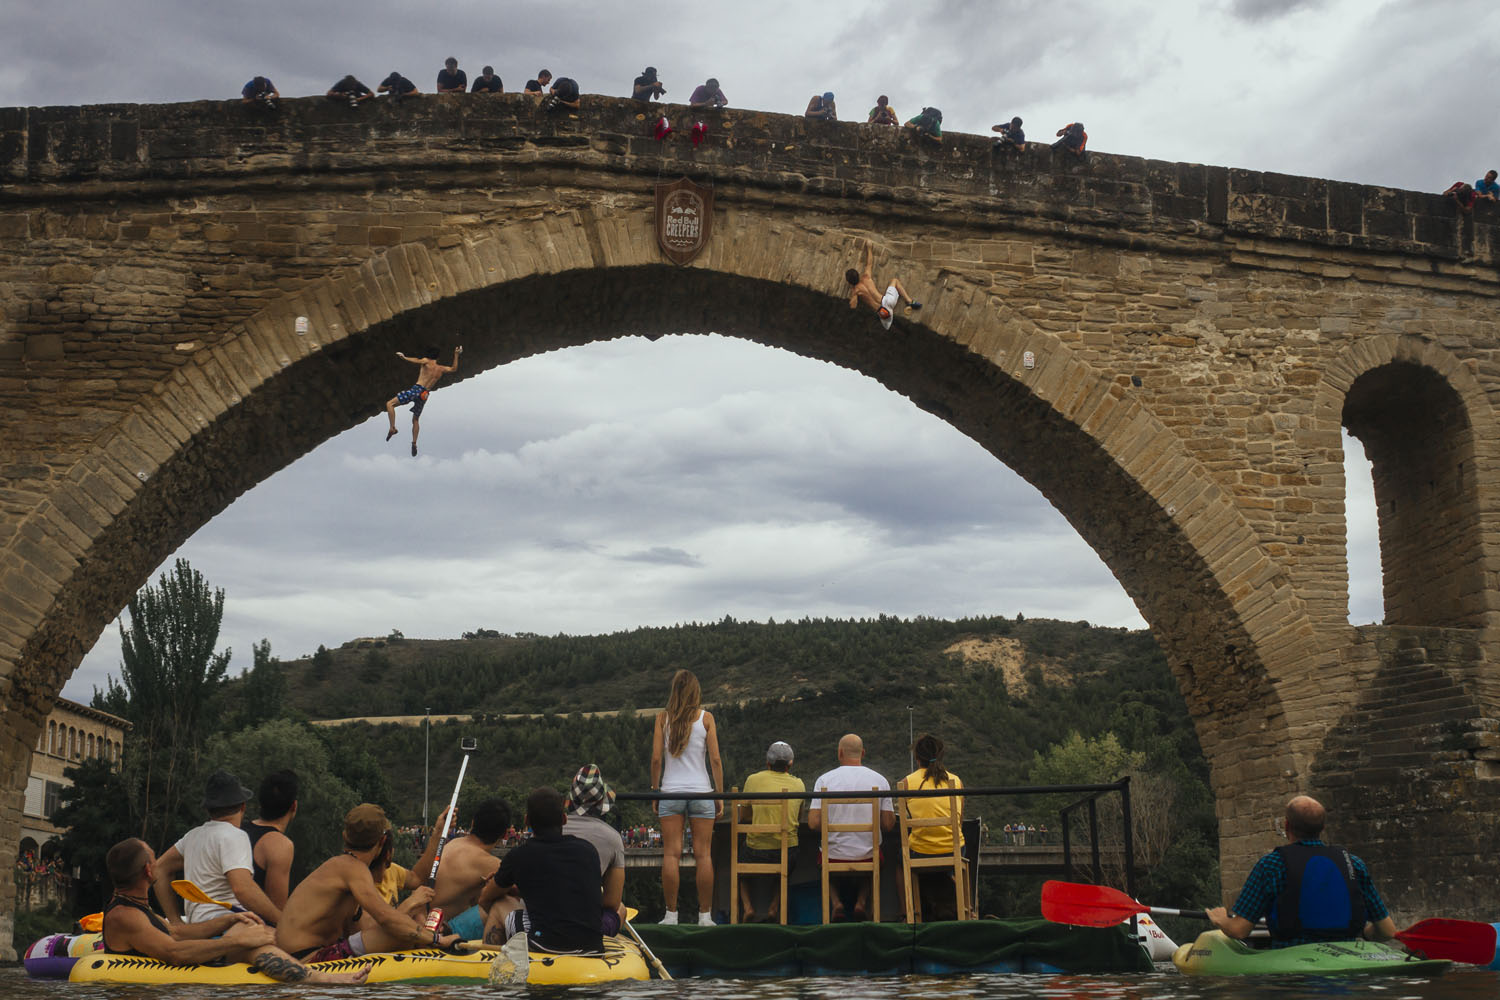 Daniel Fuertes (L) and Chris Sharma (R) compete during the Red Bull Creepers in Puente la Reina-Gares, Spain.